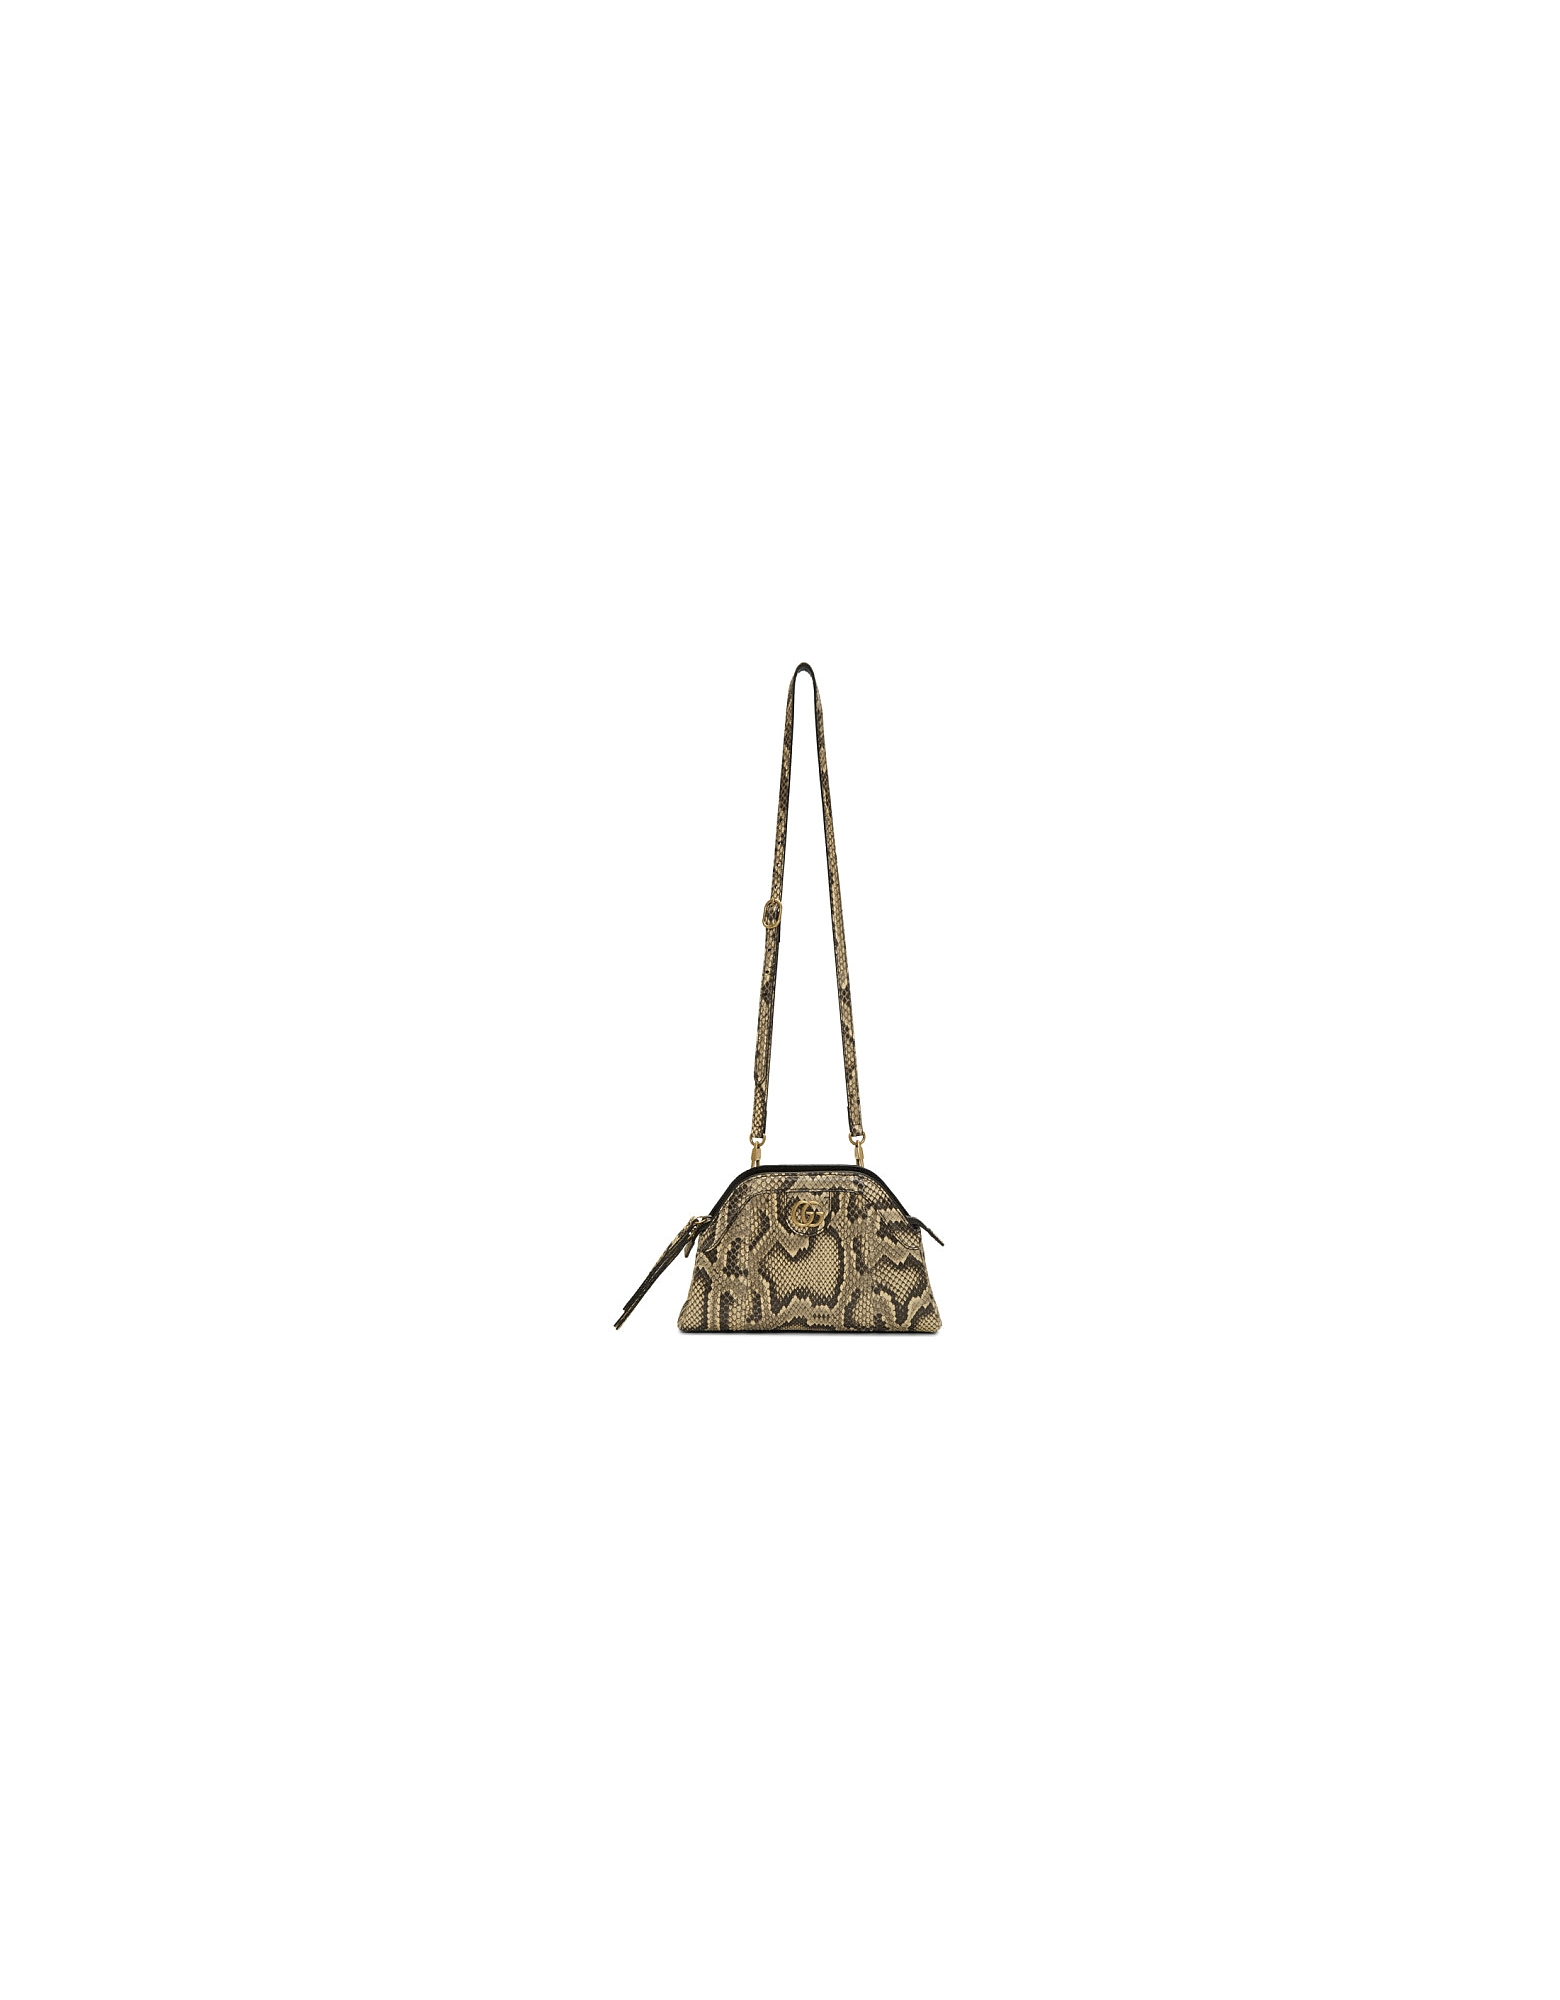 Gucci Designer Handbags, Beige Python Rebelle Shoulder Bag